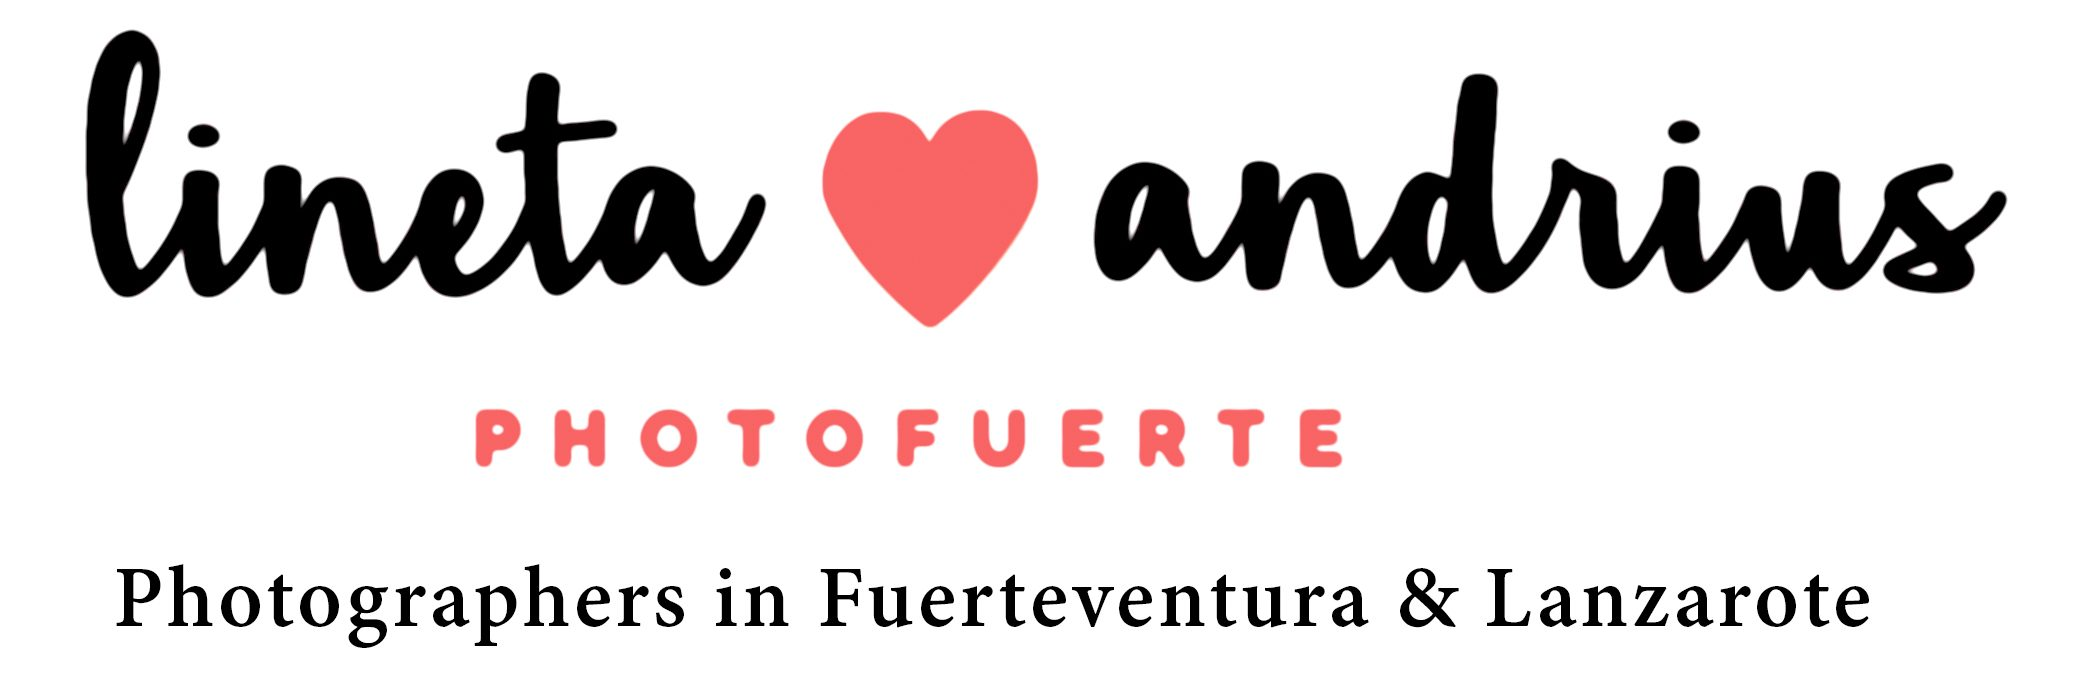 Photographers in Fuerteventura & Lanzarote